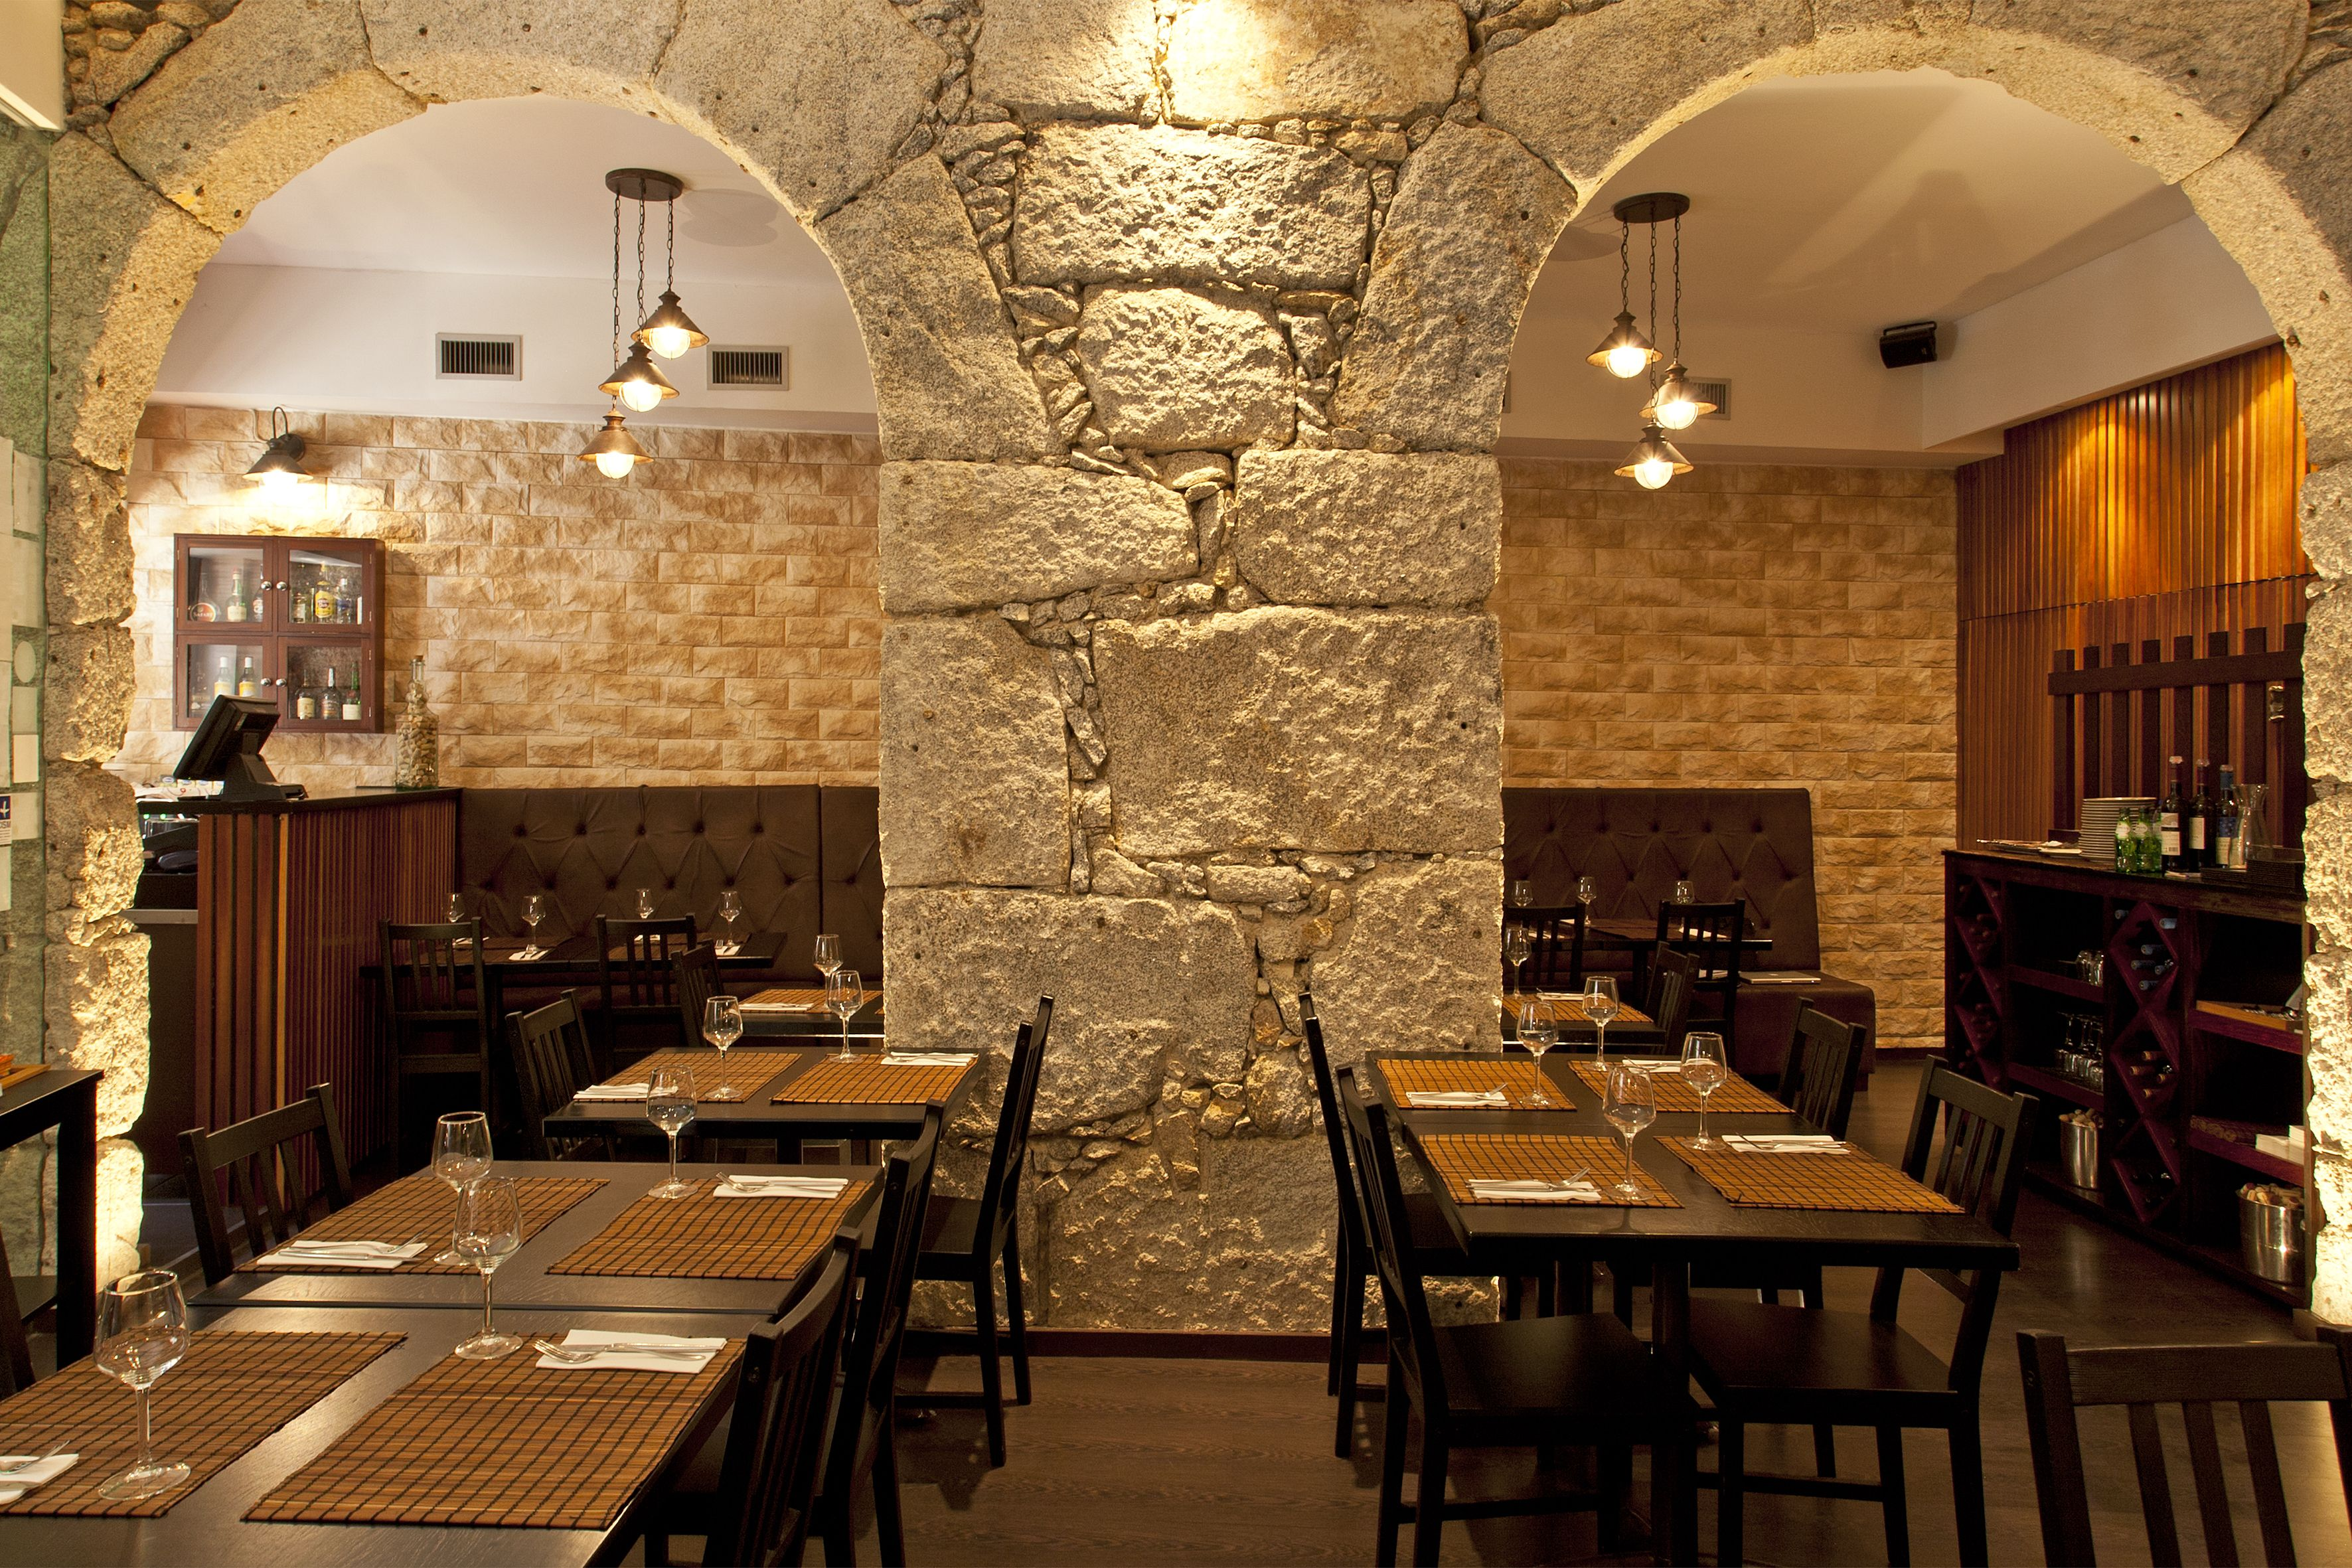 Sofa Cafe Franquia Tapas Na Boca Restaurant Architect Carlos Cunha Restaurants